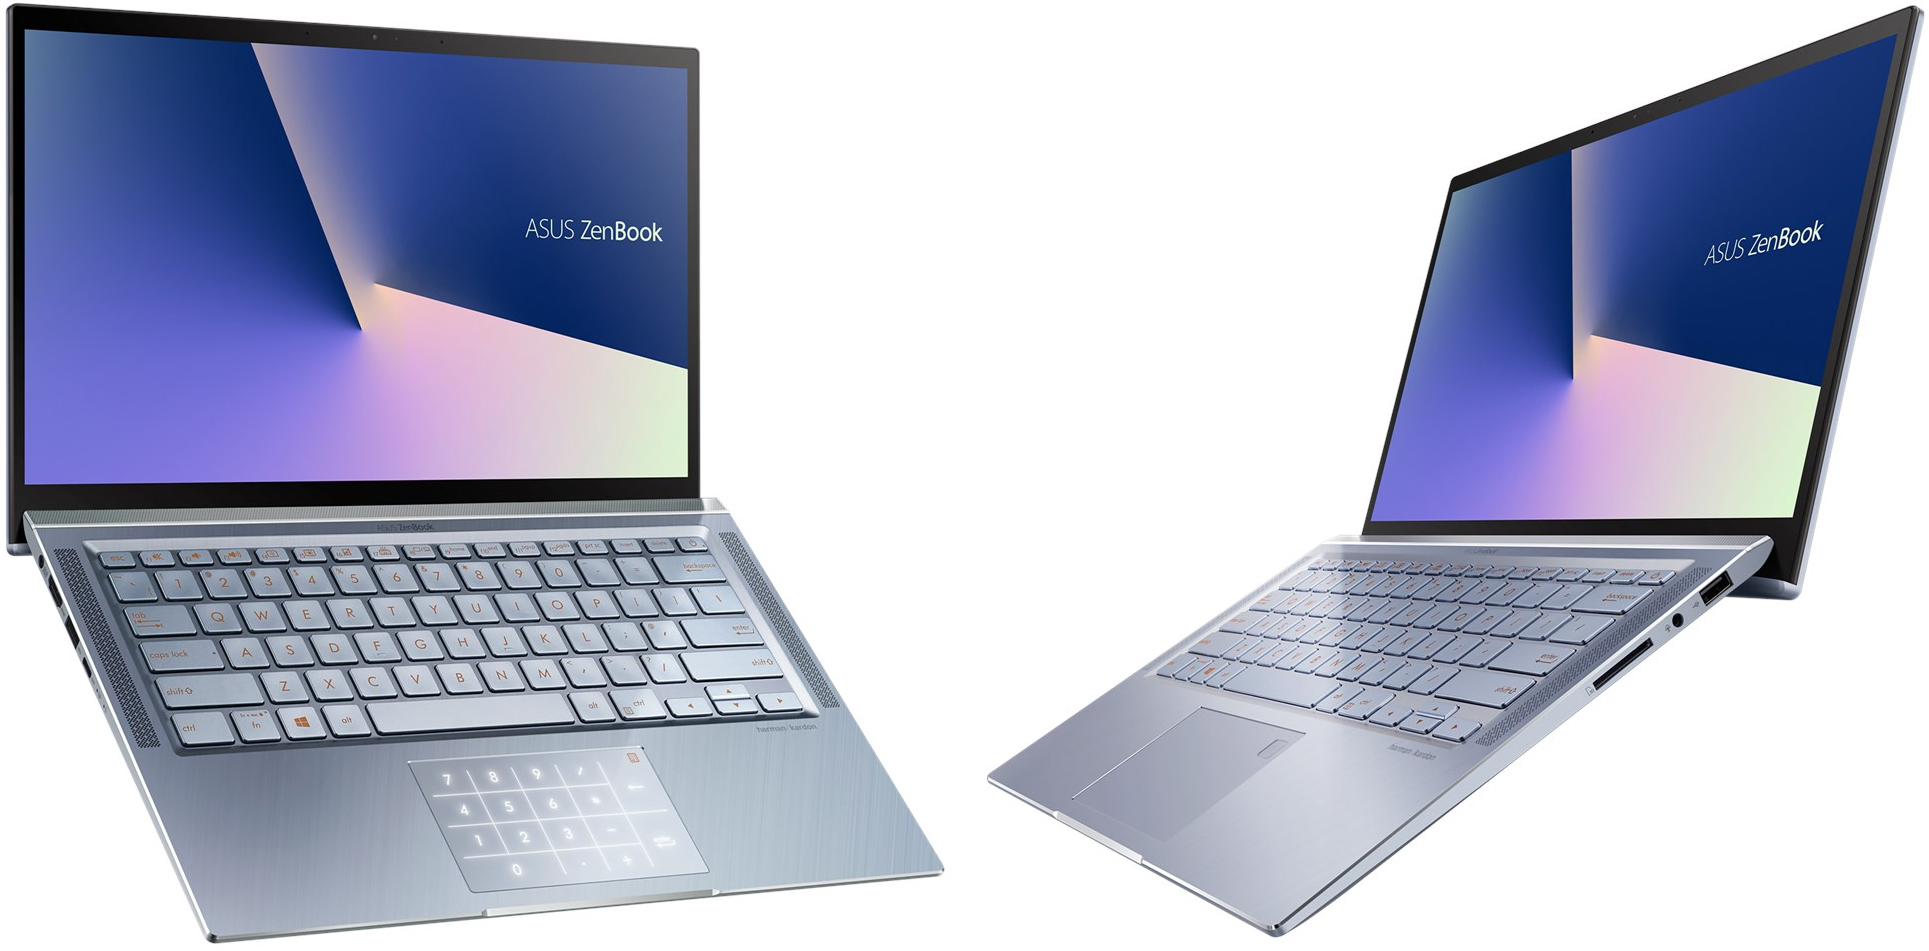 ASUS Launches AMD Ryzen-Based ZenBooks: Two Laptops & a Convertible